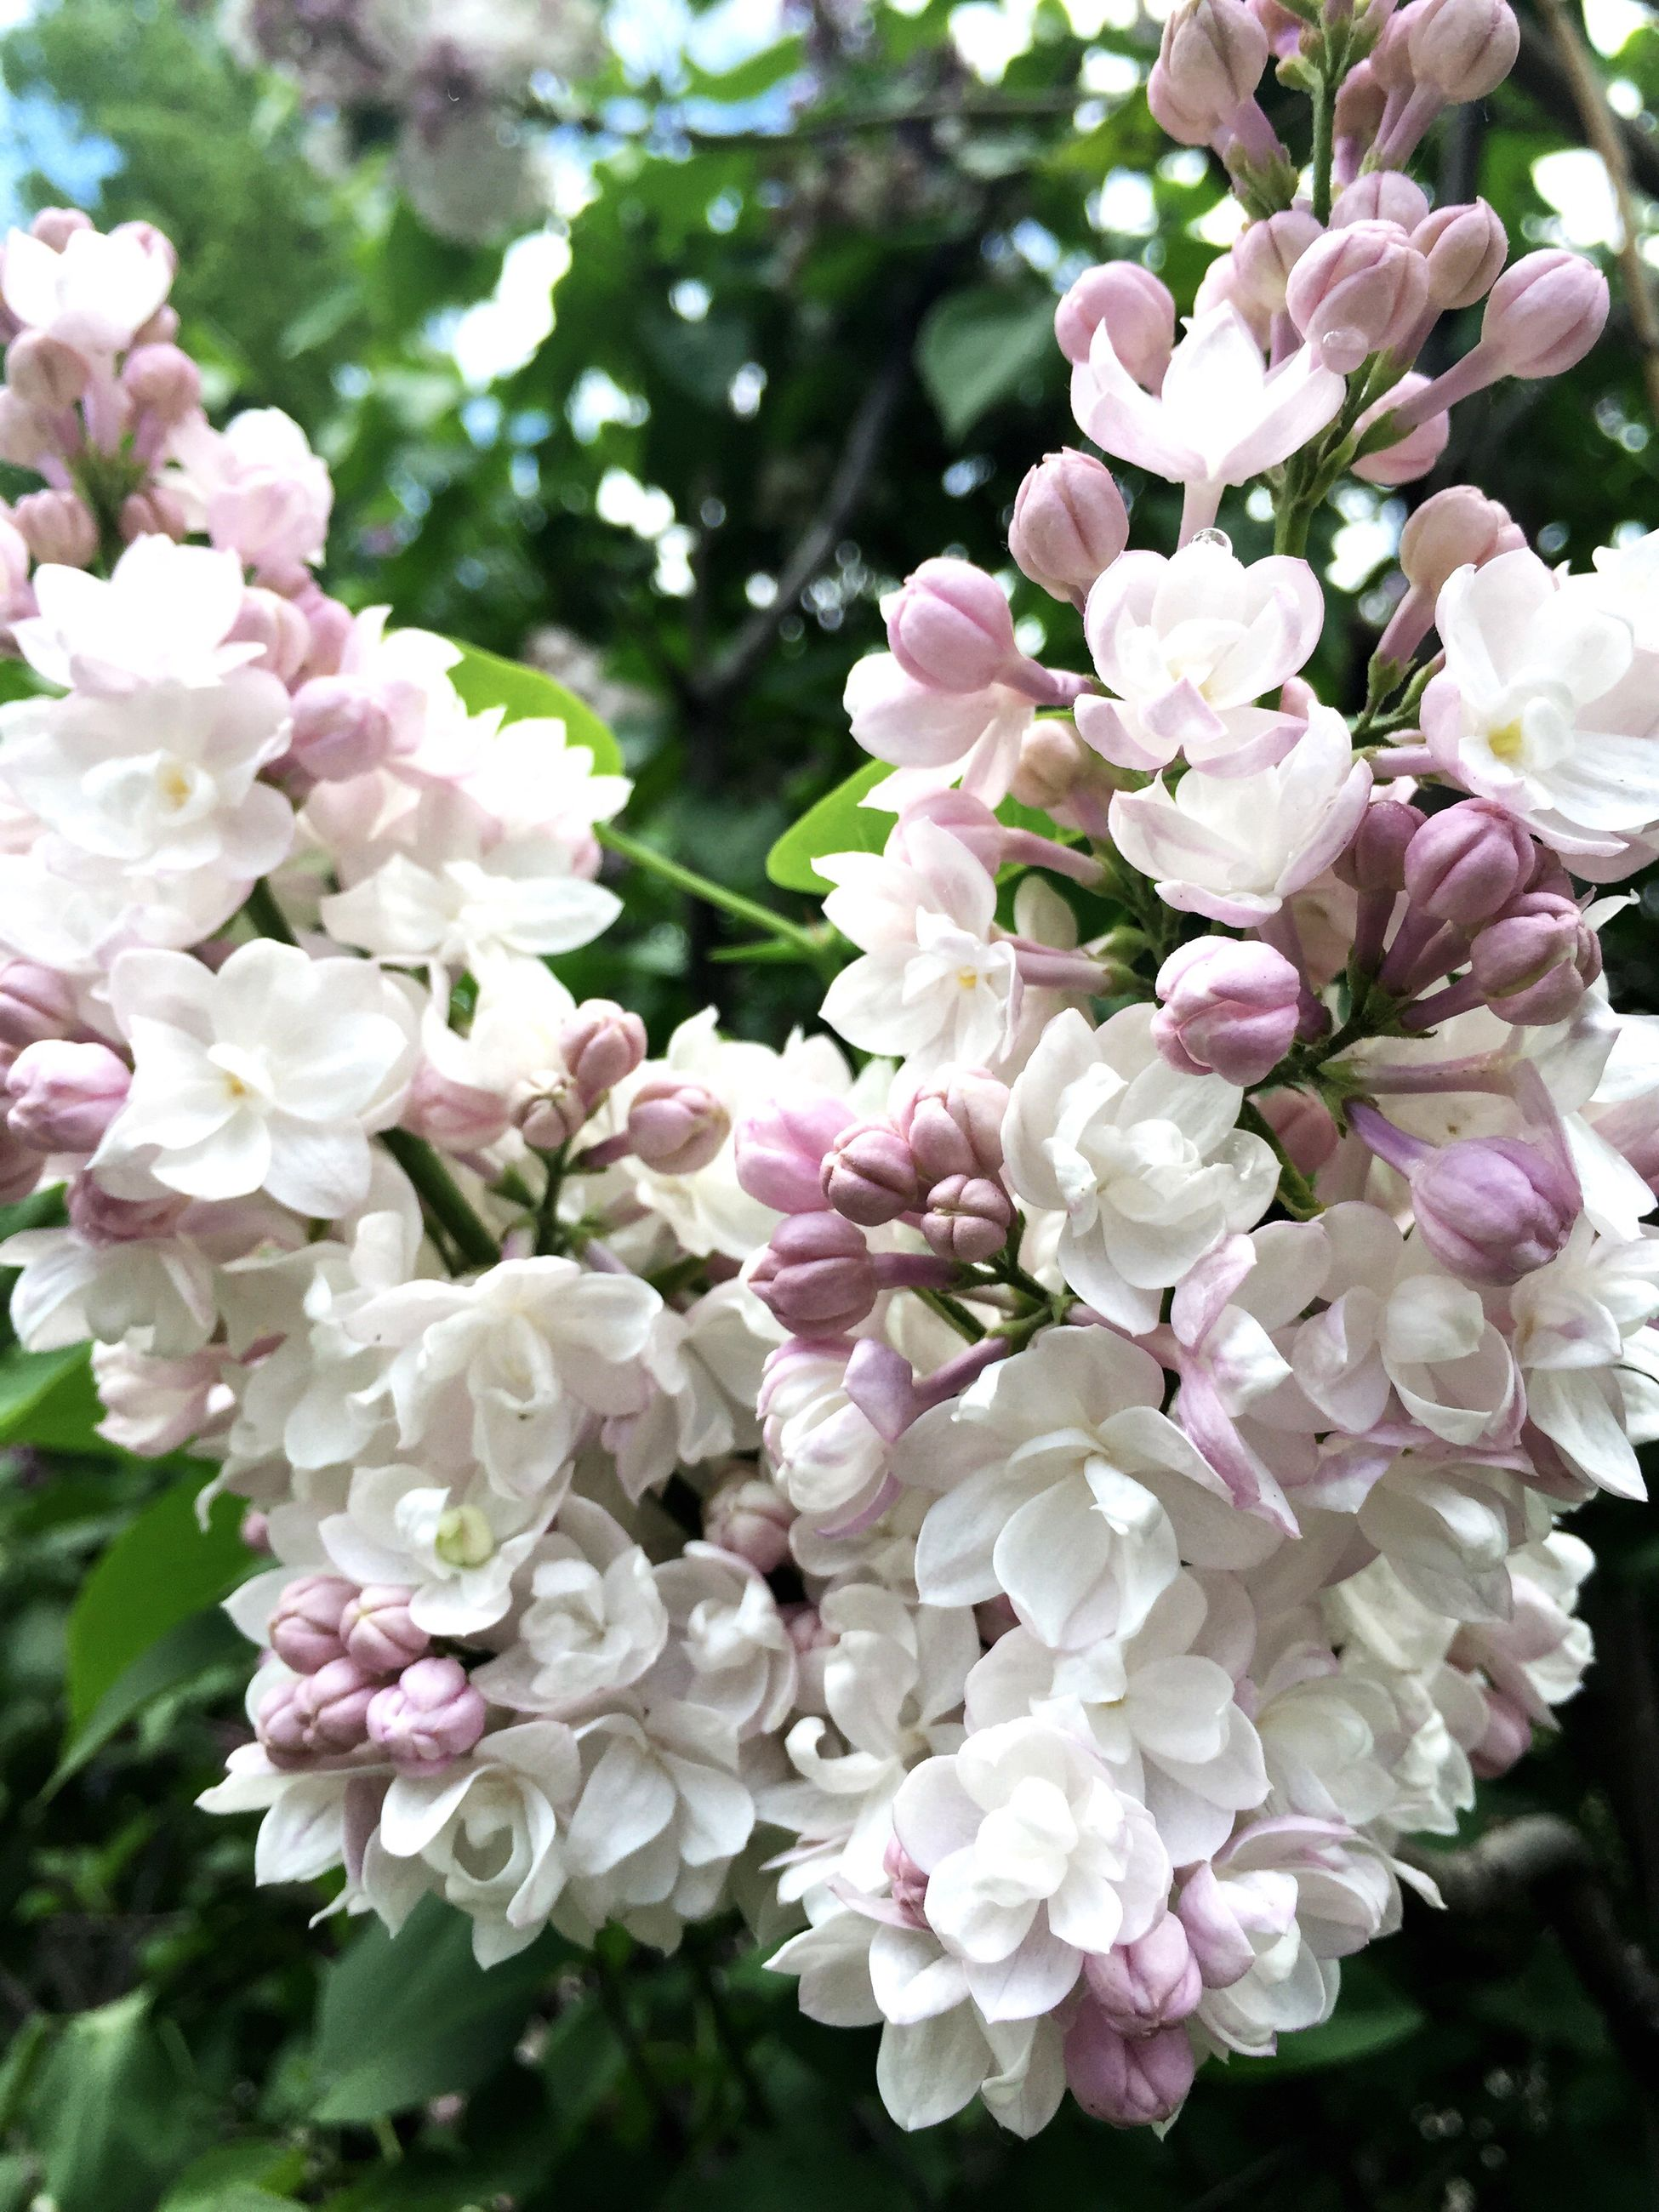 flower, freshness, fragility, petal, growth, beauty in nature, pink color, flower head, nature, close-up, focus on foreground, blooming, blossom, in bloom, park - man made space, bunch of flowers, botany, white color, plant, cherry blossom